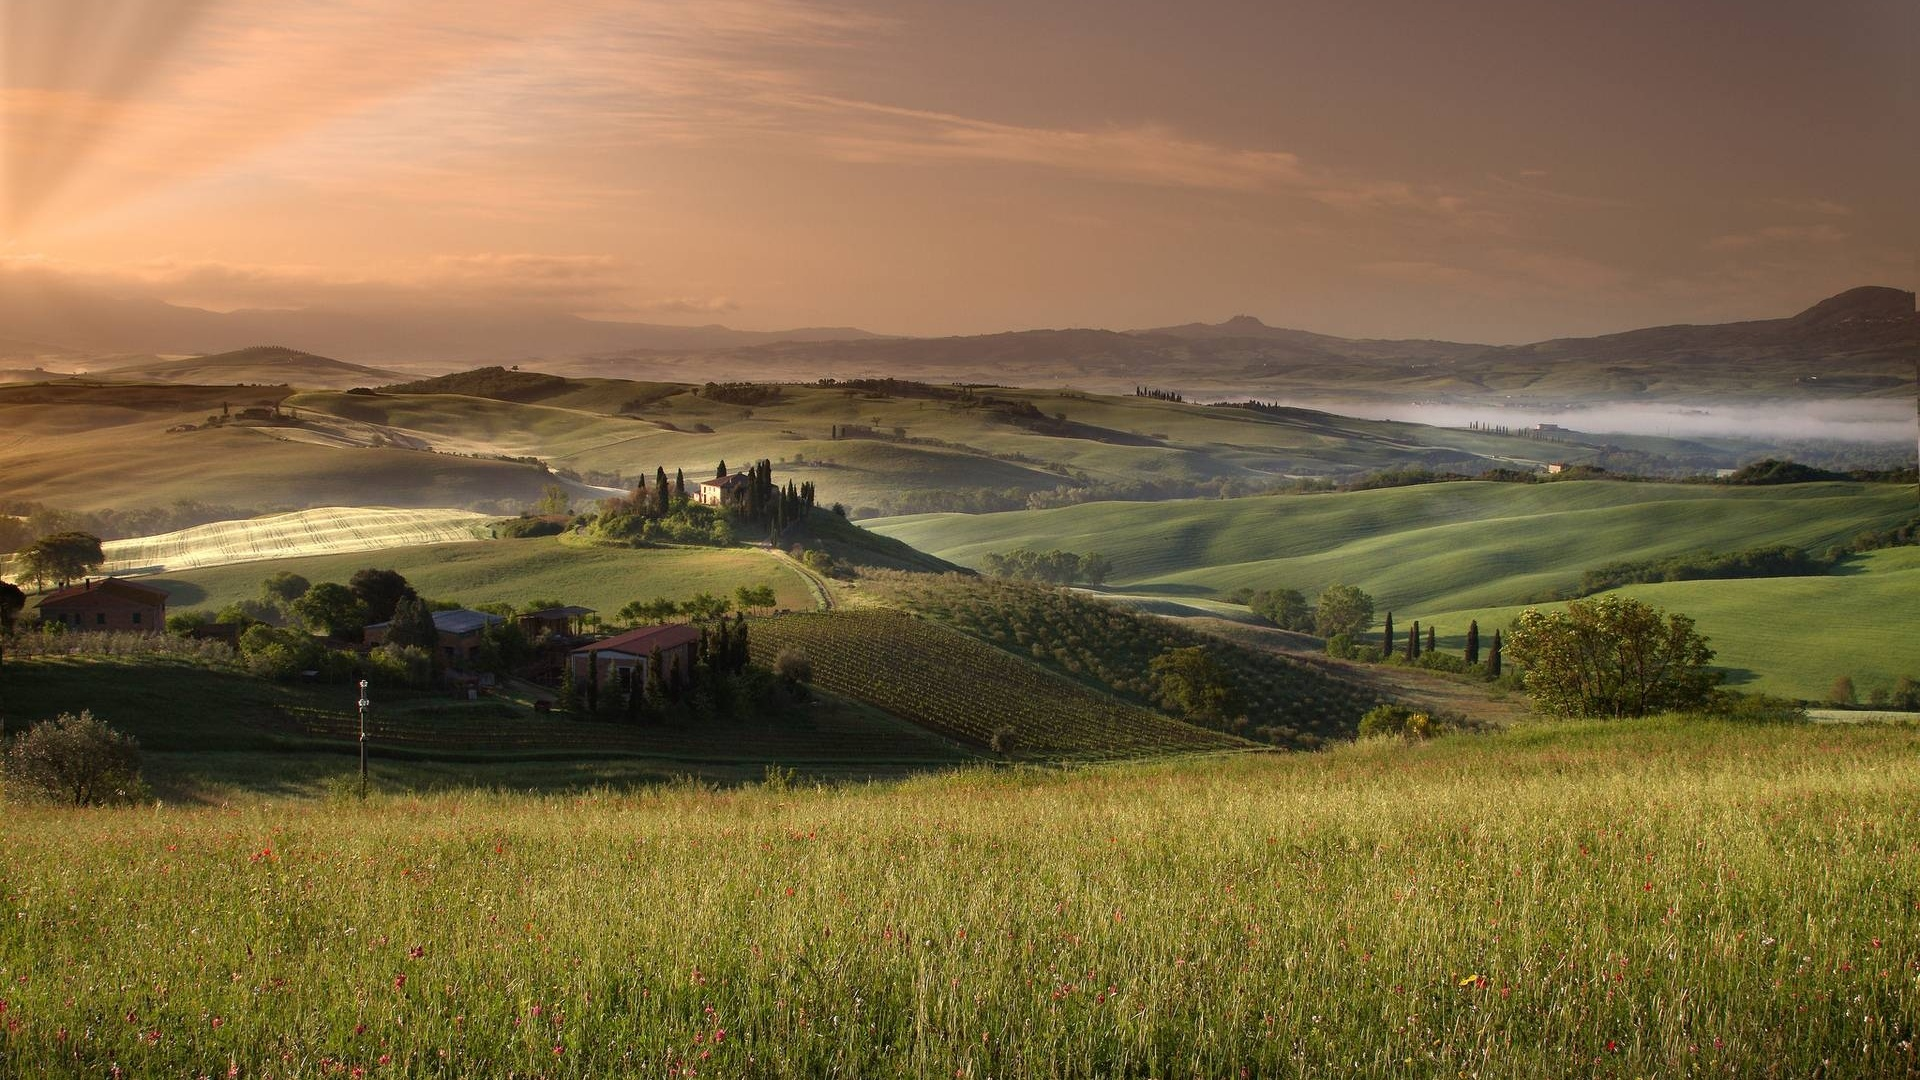 Tuscany background wallpaper